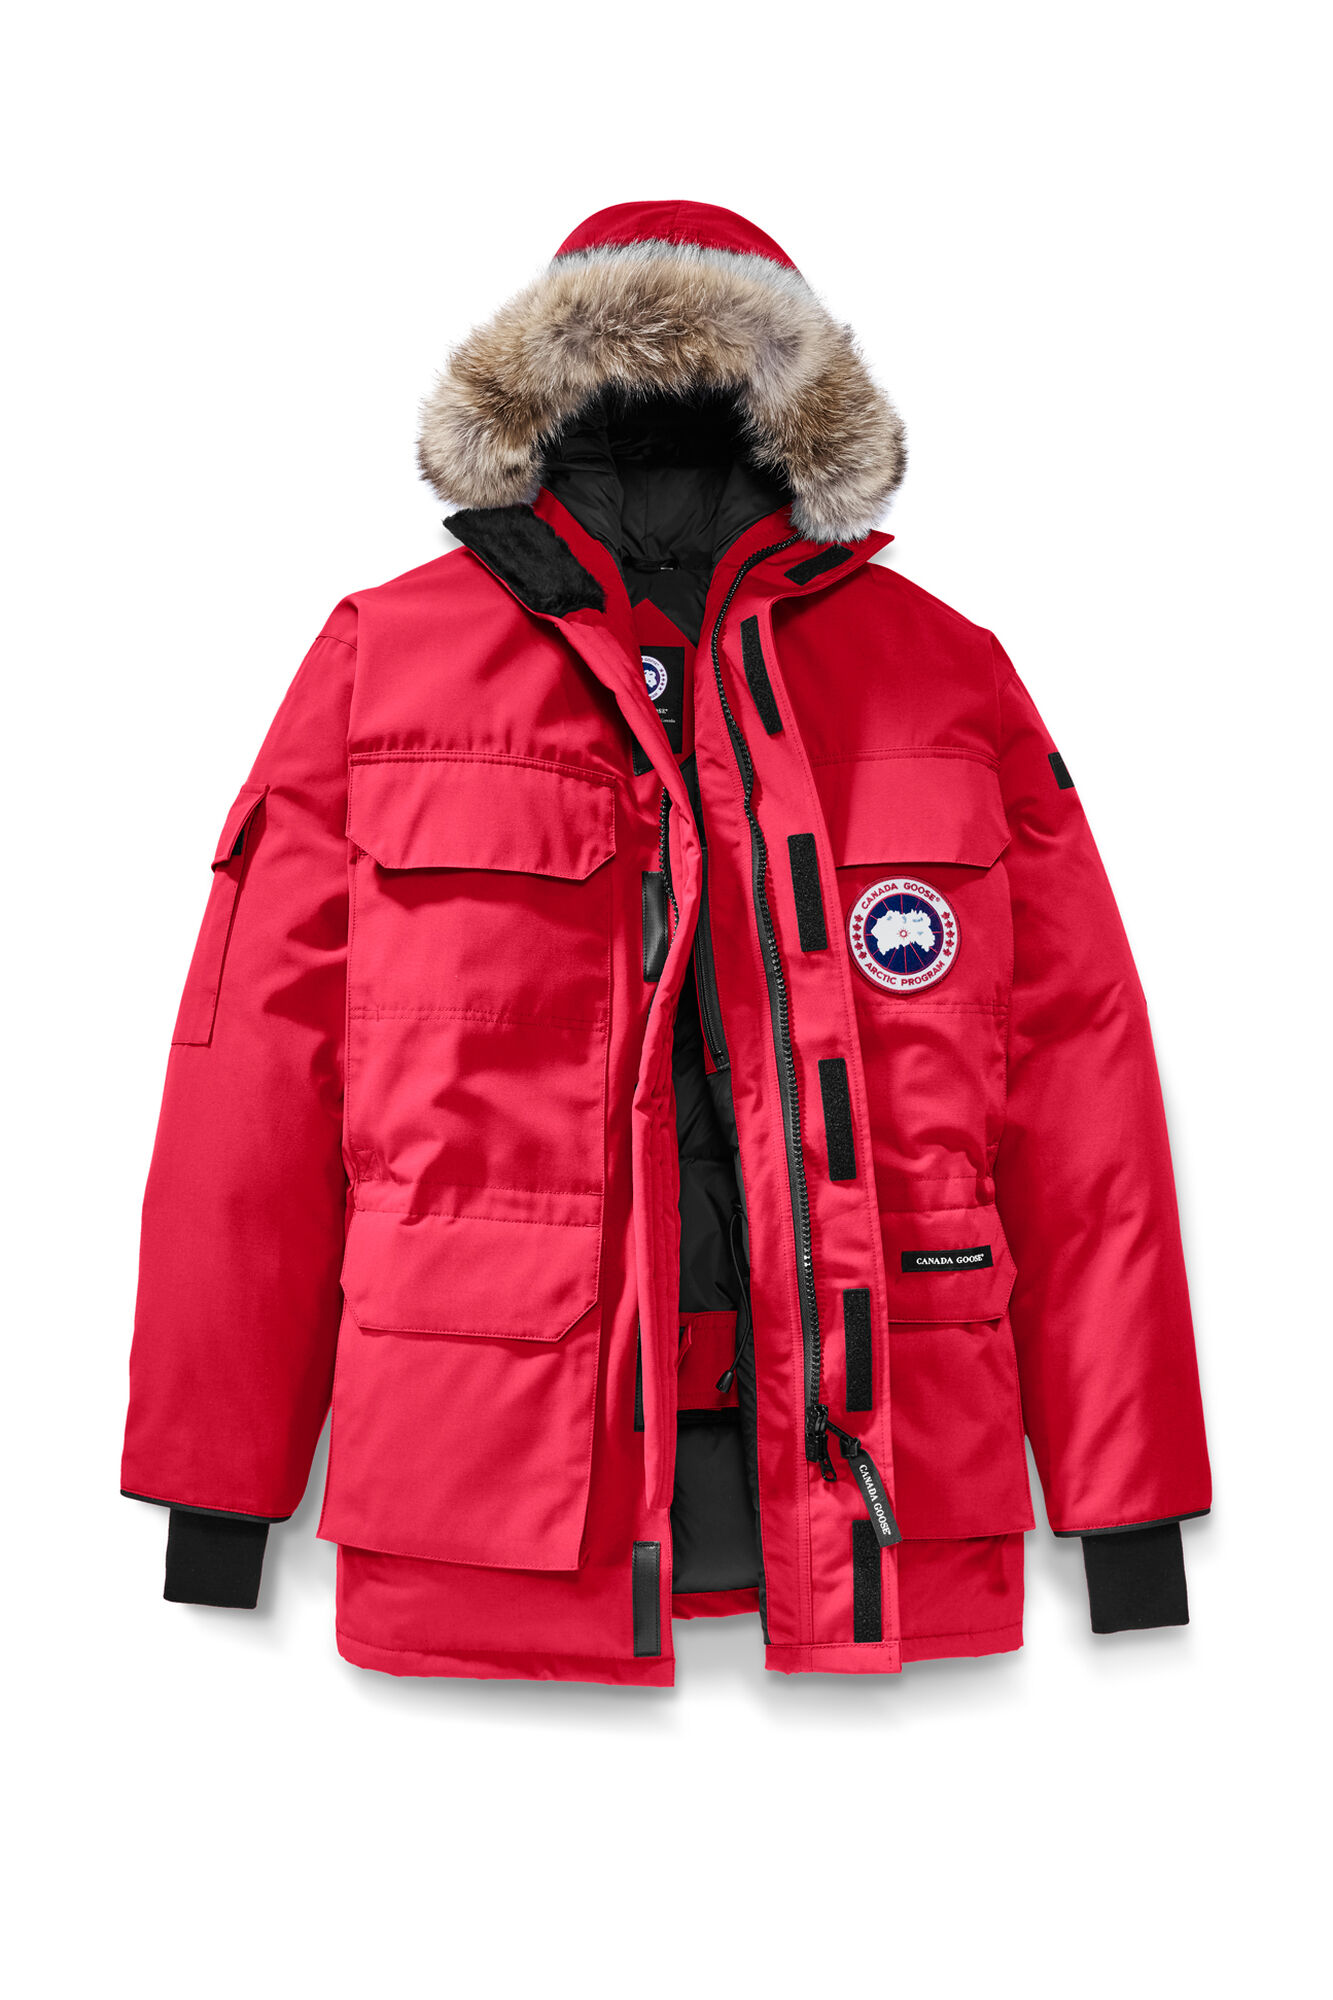 Canada Goose victoria parka replica 2016 - Men's Arctic Program Expedition Parka | Canada Goose?